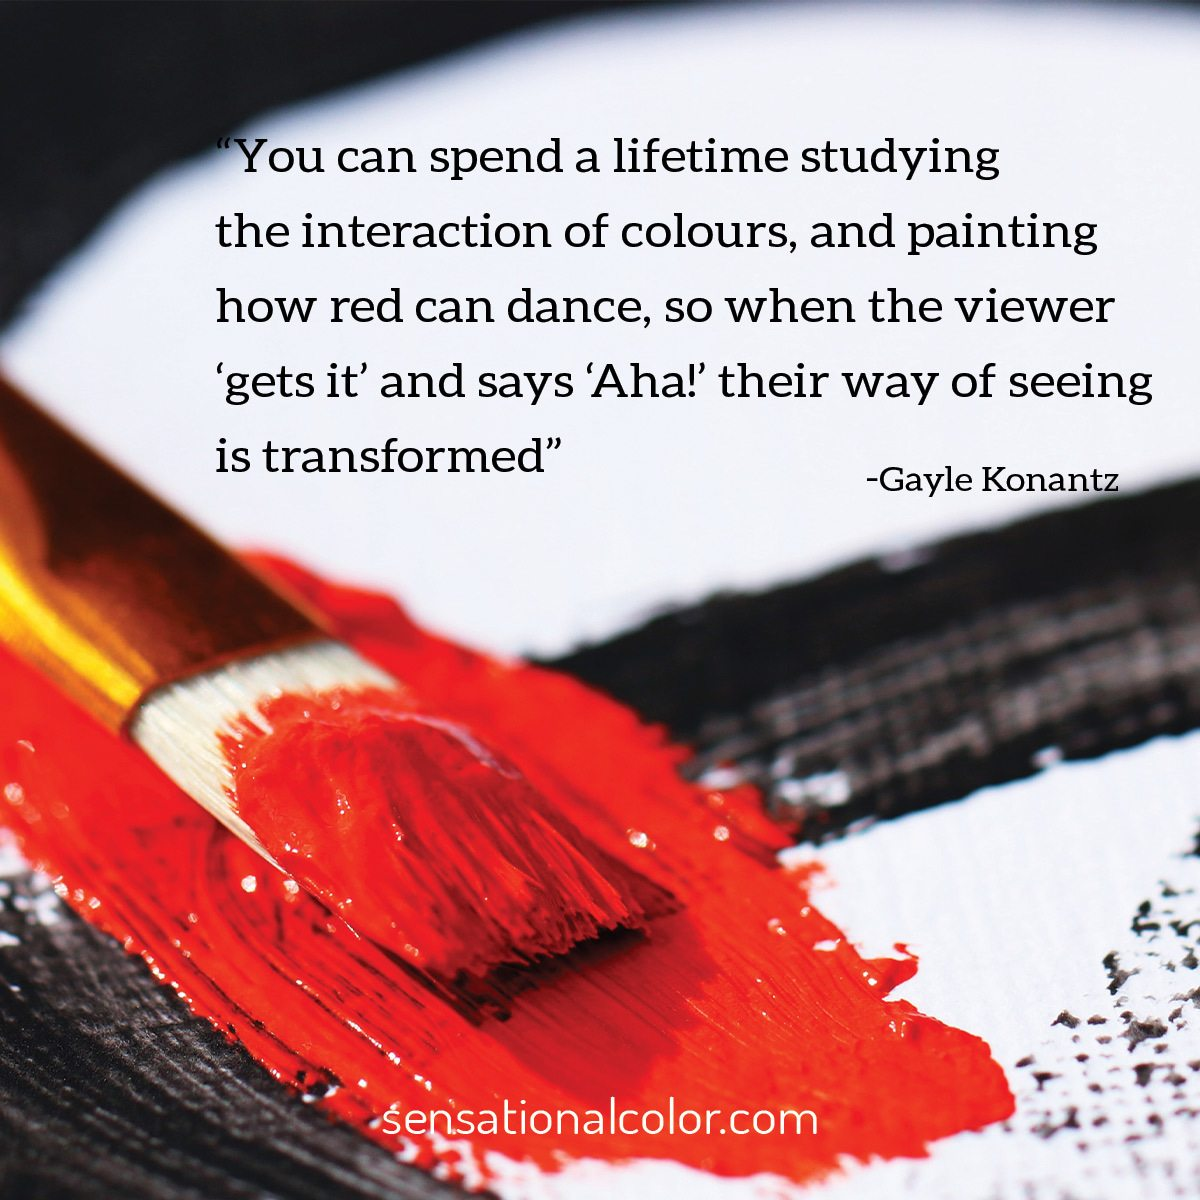 """""""You can spend a lifetime studying the interaction of colours, and painting how red can dance, so when the viewer 'gets it' and says 'Aha!' their way of seeing is transformed."""" - Gayle Konantz"""